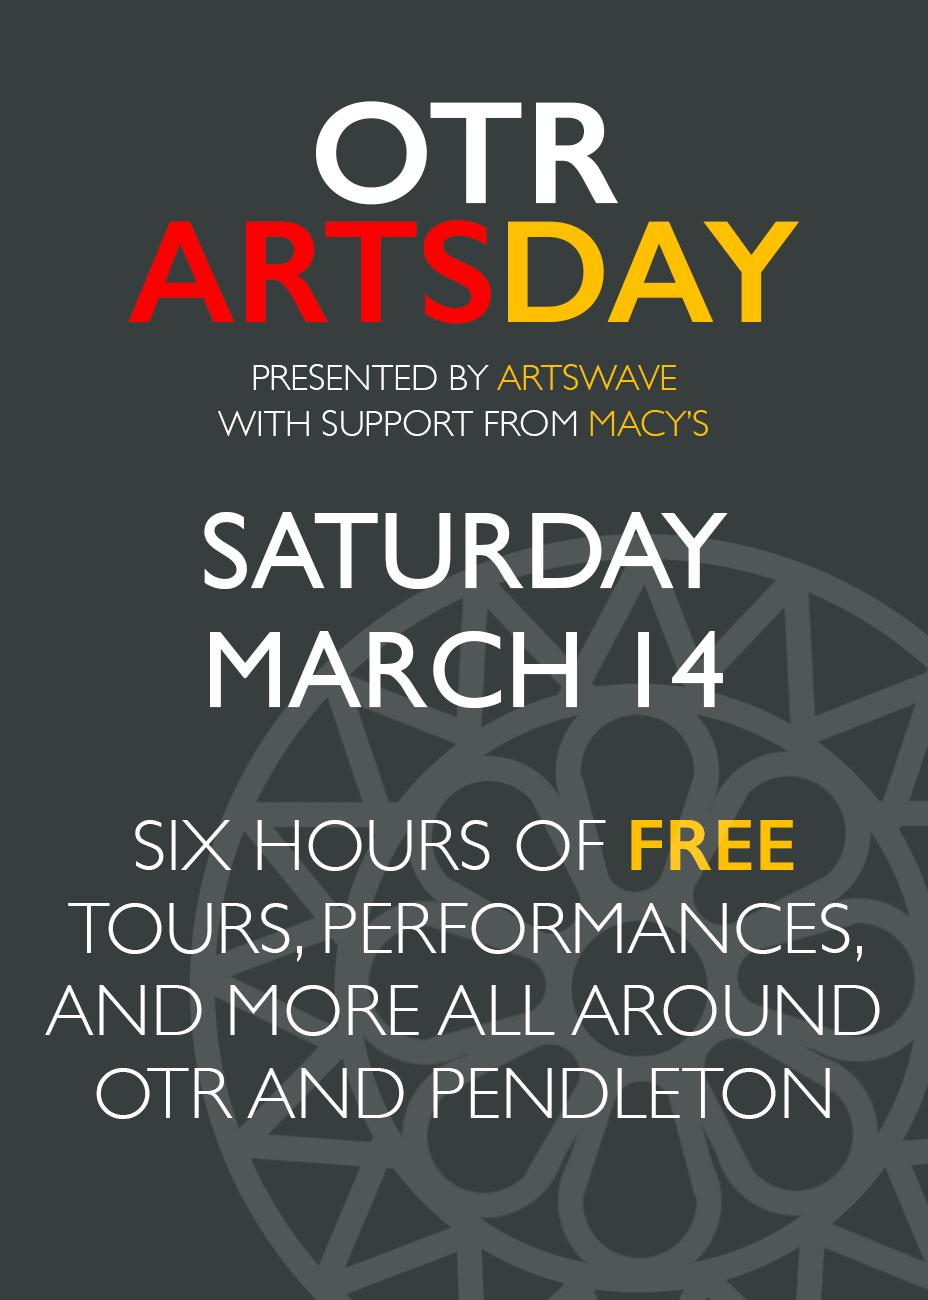 OTR Arts Day, presented by ArtsWave with support from Macy's, is a free six-hour event on Saturday, March 14th from 10 AM to 4 PM featuring tours, performances, art-making, and more at venues all around OTR and Pendleton. For more information, visit ArtsWave.org / Image: Phil Armstrong / Published: 3.10.20